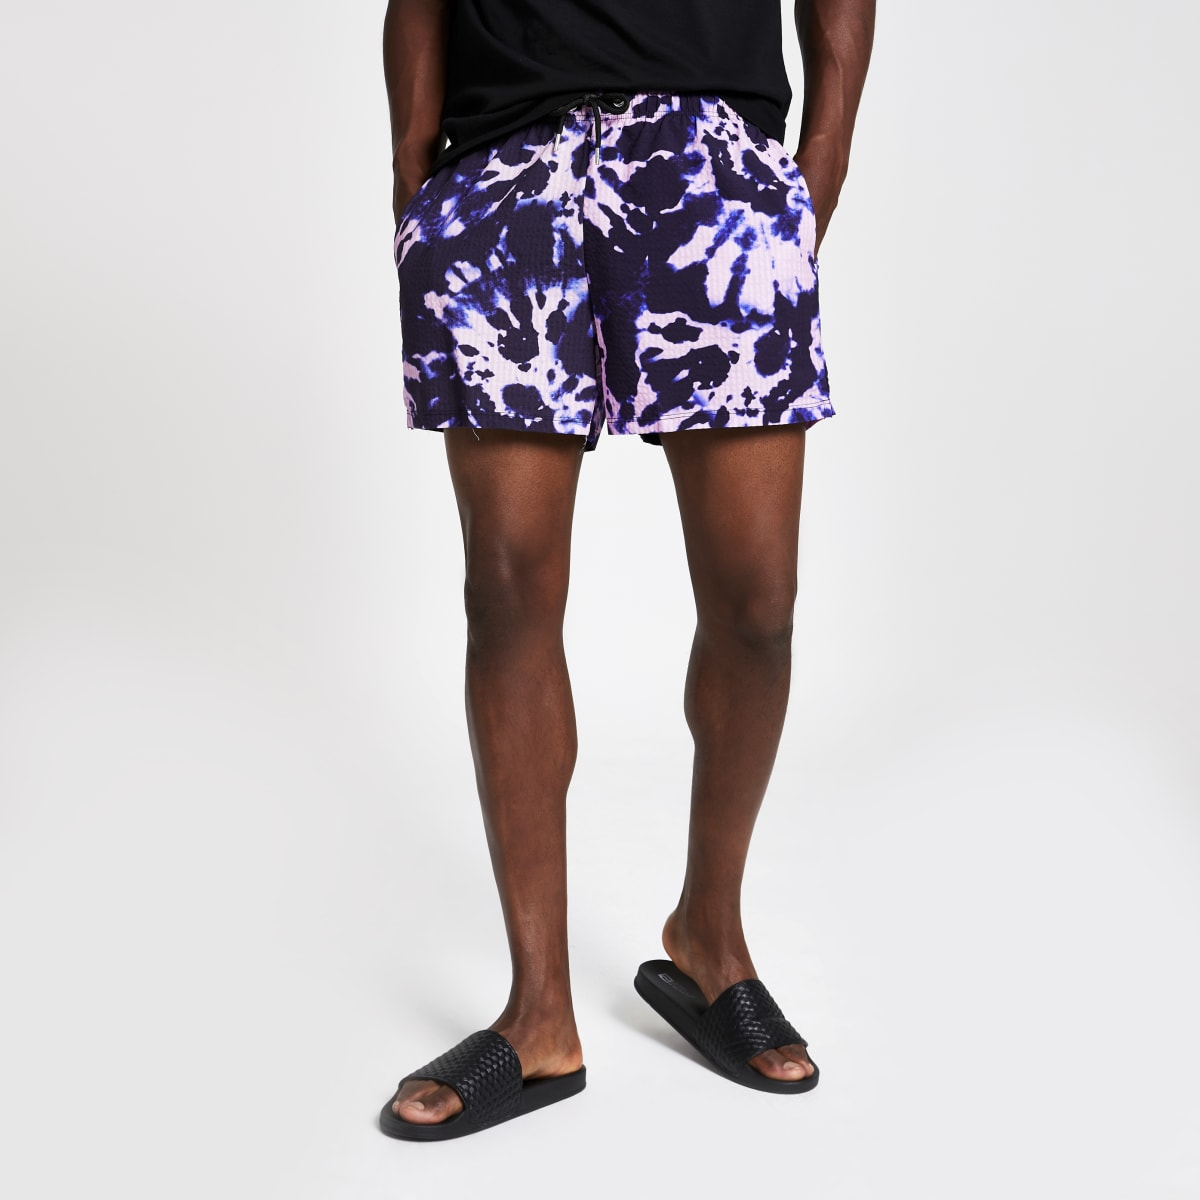 Purple tie dye slim fit shorts